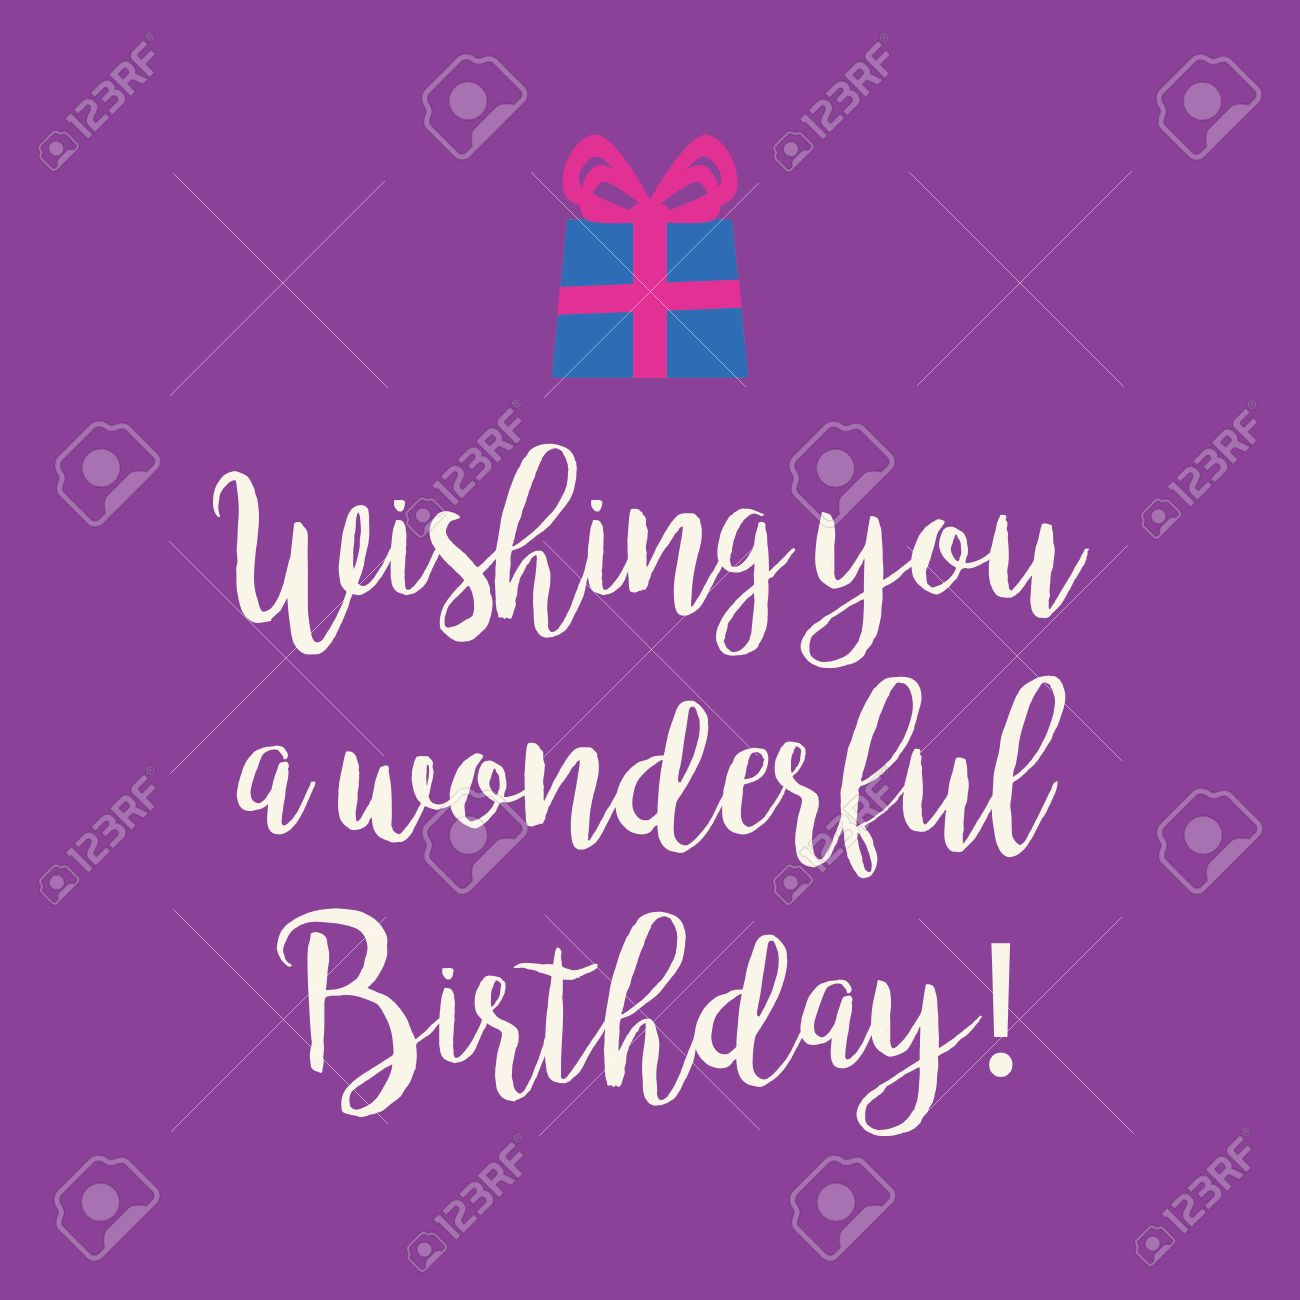 Cute Wishing You A Very Happy Birthday Greeting Card With A